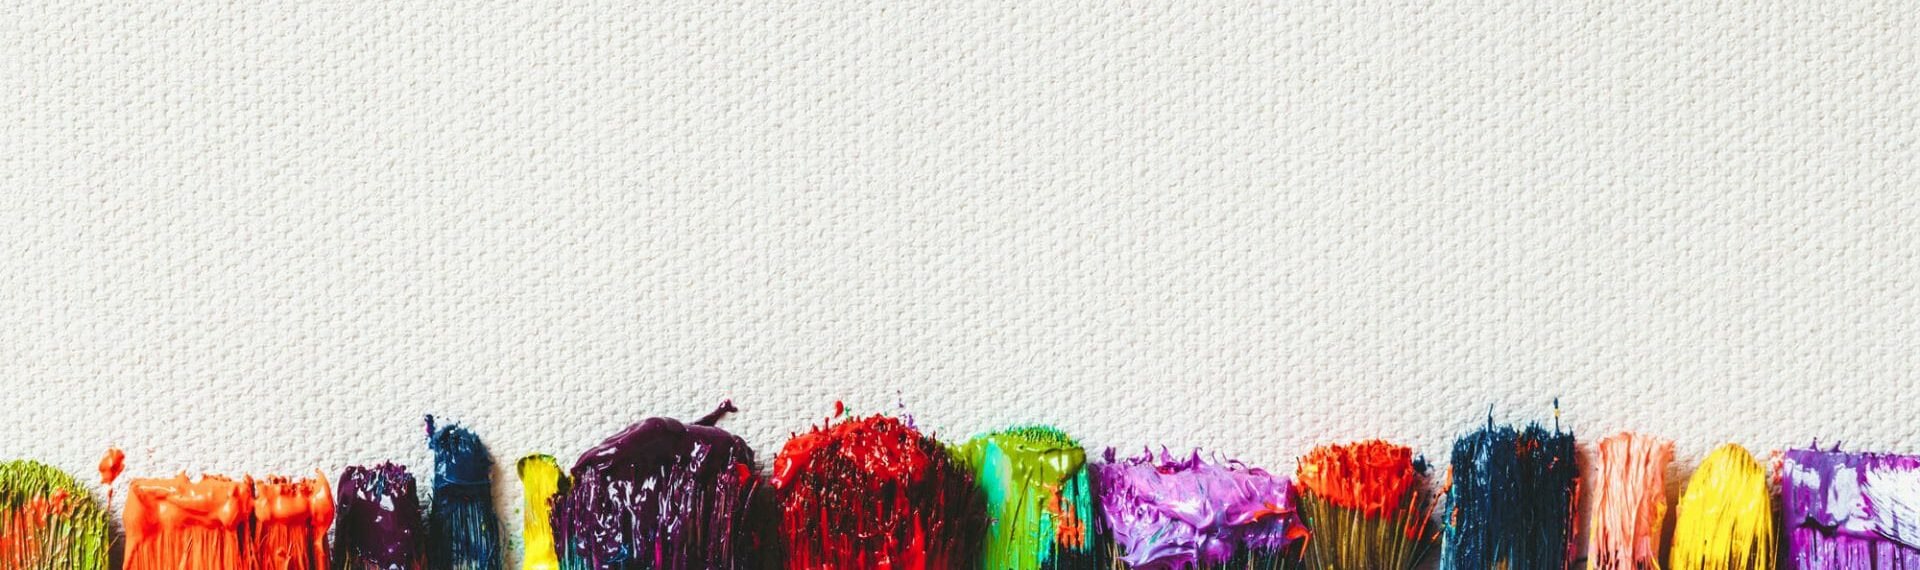 multi coloured paint brushes